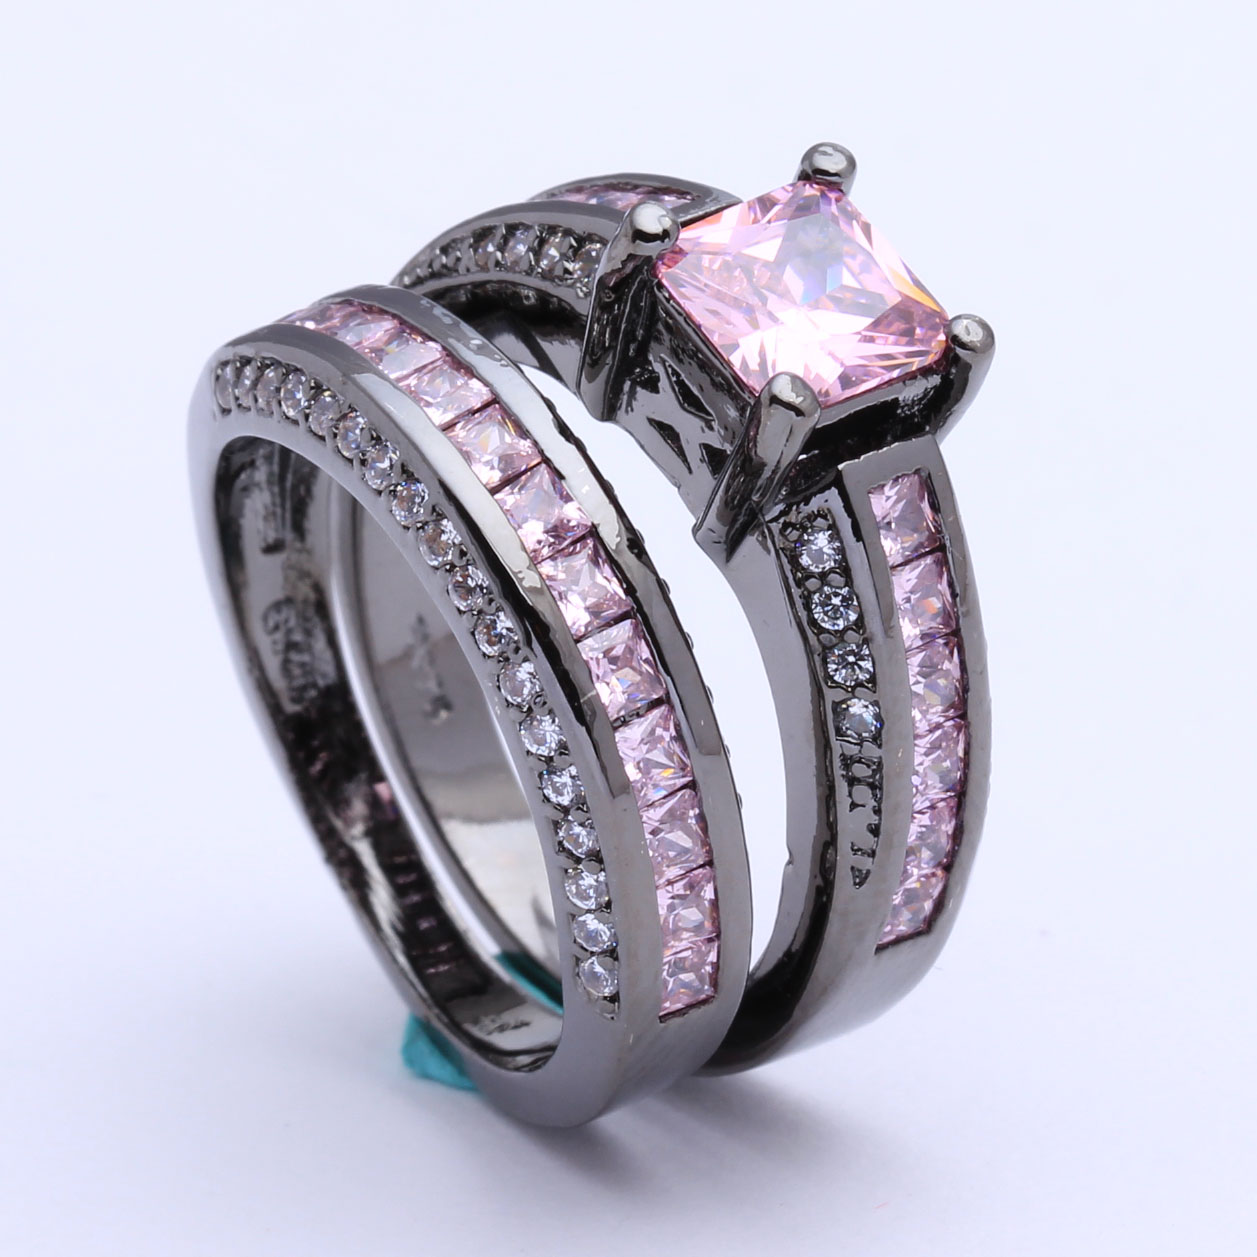 women wedding rings sets wholesale luxury engagement design paved pink blue imitation jewelry ringchina